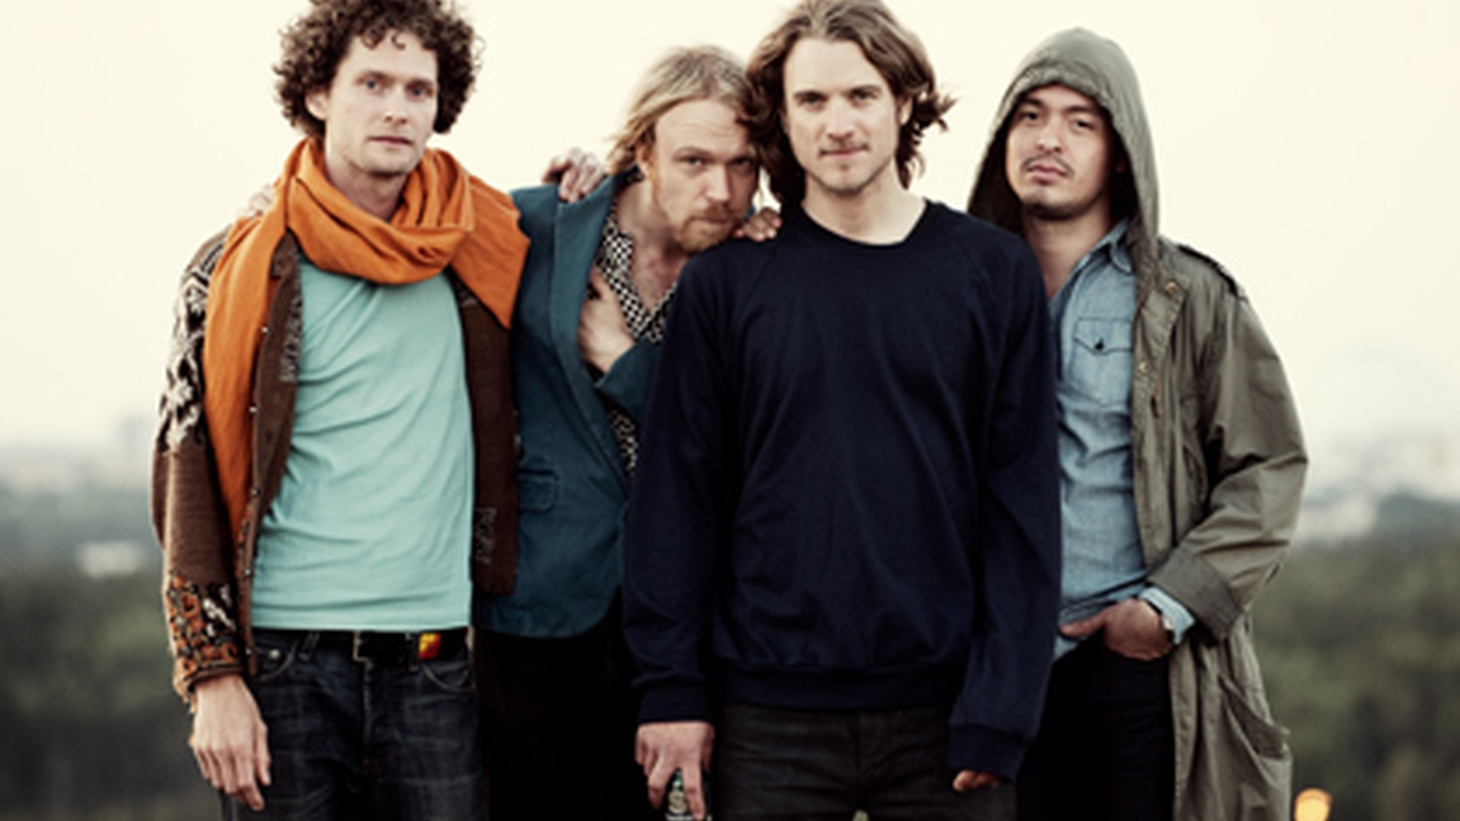 The Swedish band Dungen has been pushing the boundaries of psychedelic rock since the dawn of the century, when the group first started turning the sounds of the late '60s and early '70s into a Technicolor sprawl of endless possibility. Allas Sak, Dungen's seventh album and first in five years, finds Ejstes and company immersing themselves deeper into the stacks and making small refinements that have a profound effect on their work.